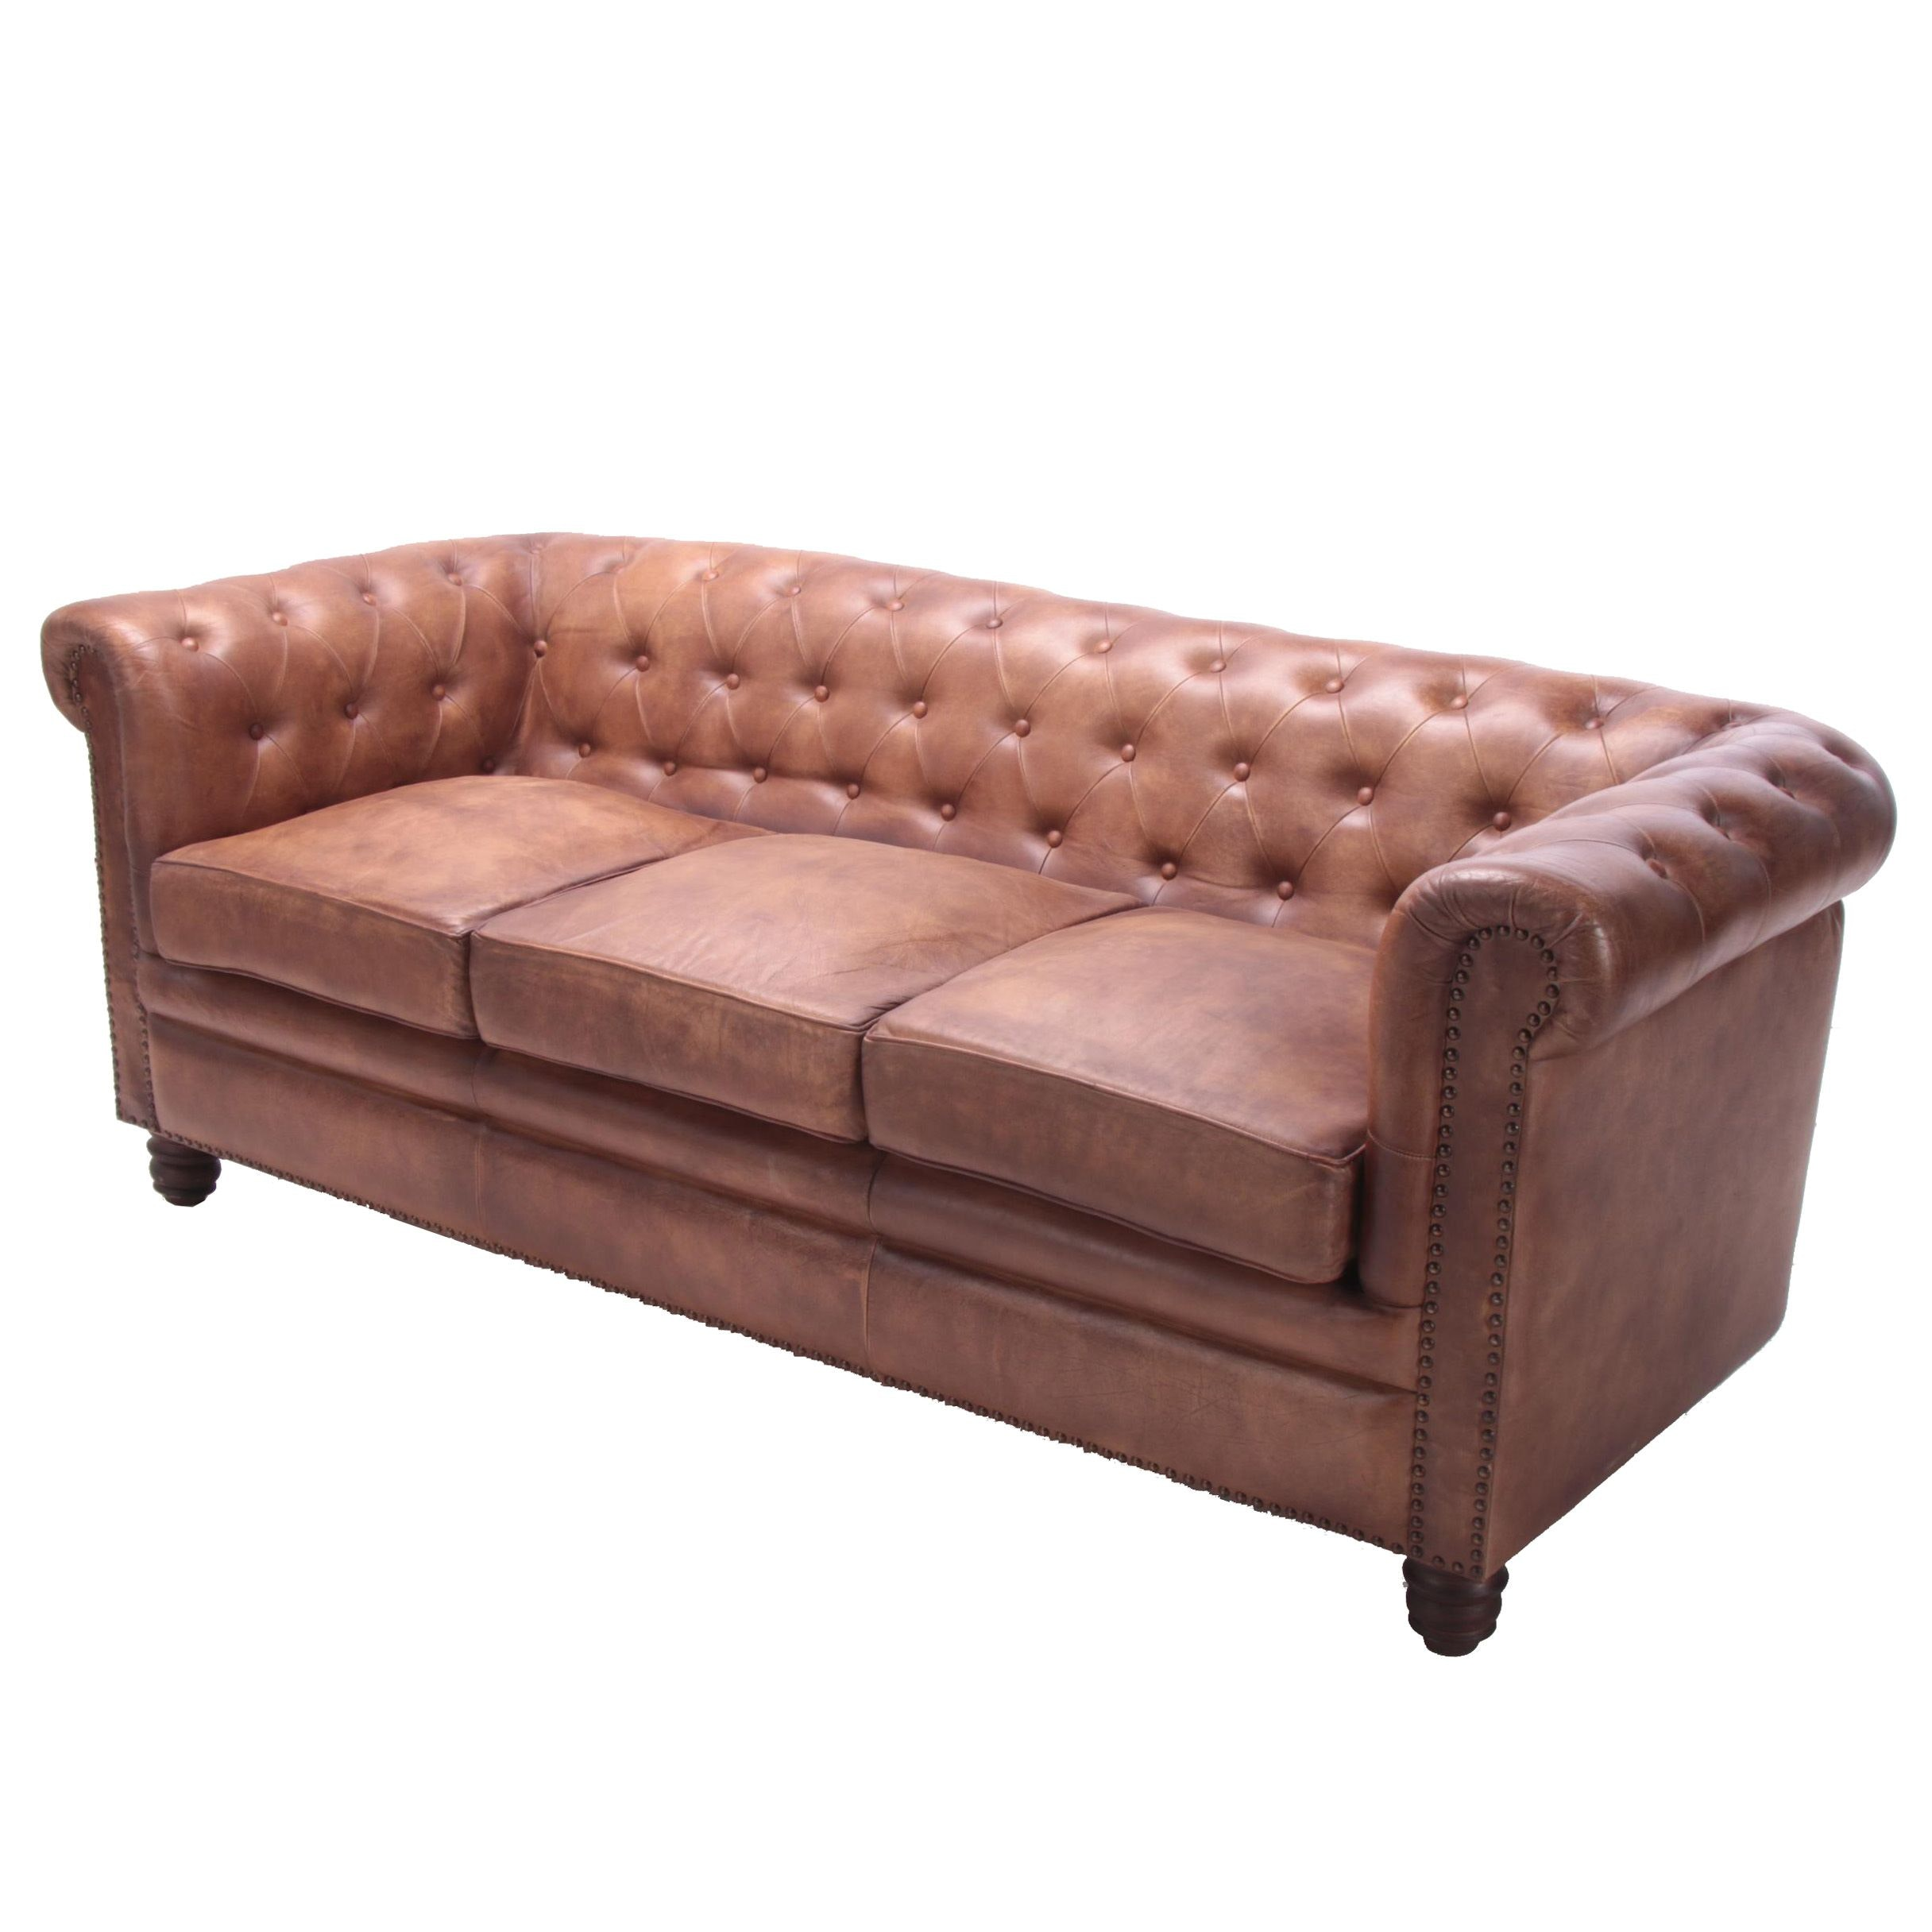 "Chesterfield Style ""Norwood"" Tufted Leather Sofa"